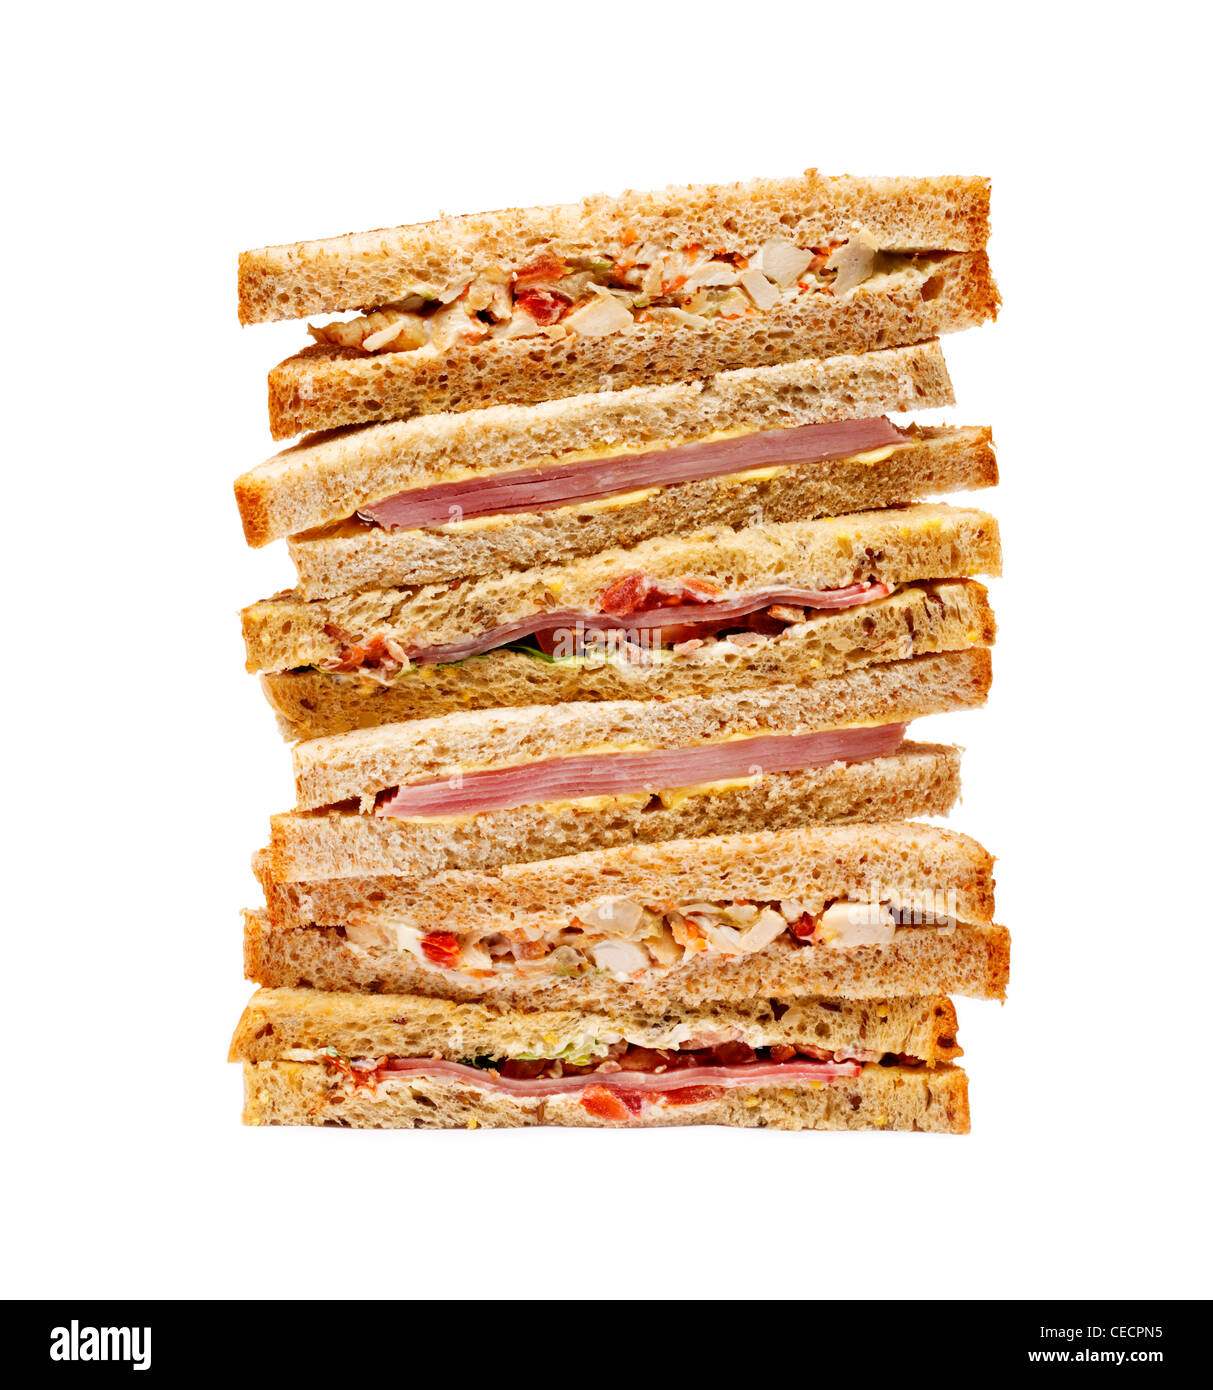 Sandwich stack on white background - Stock Image